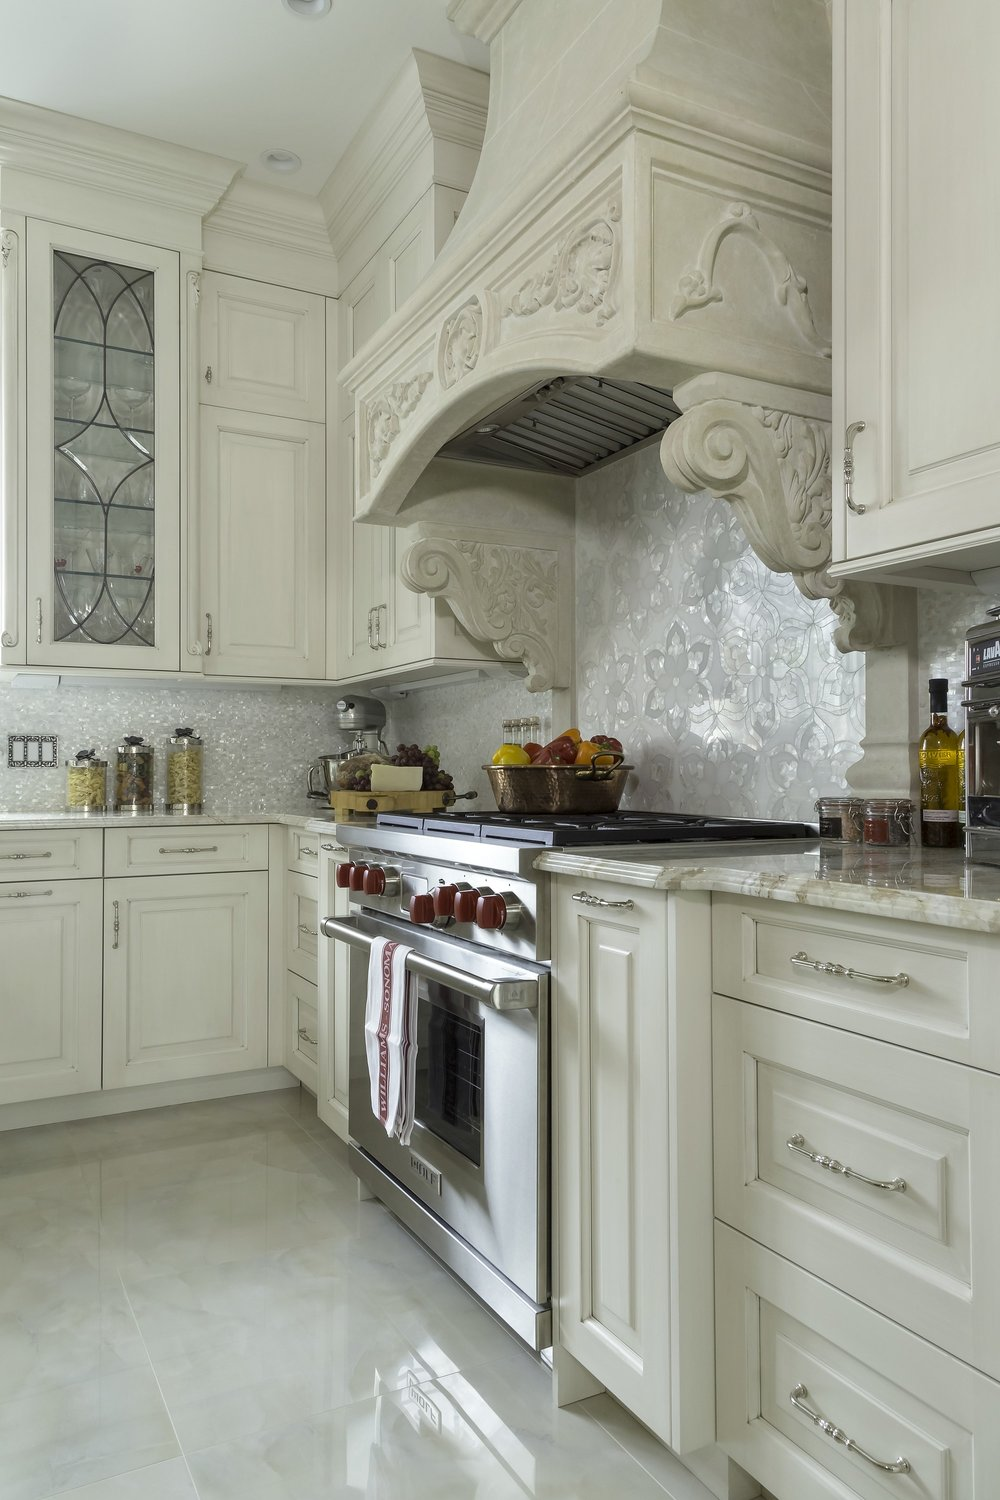 Traditional style kitchen with range hood and range oven